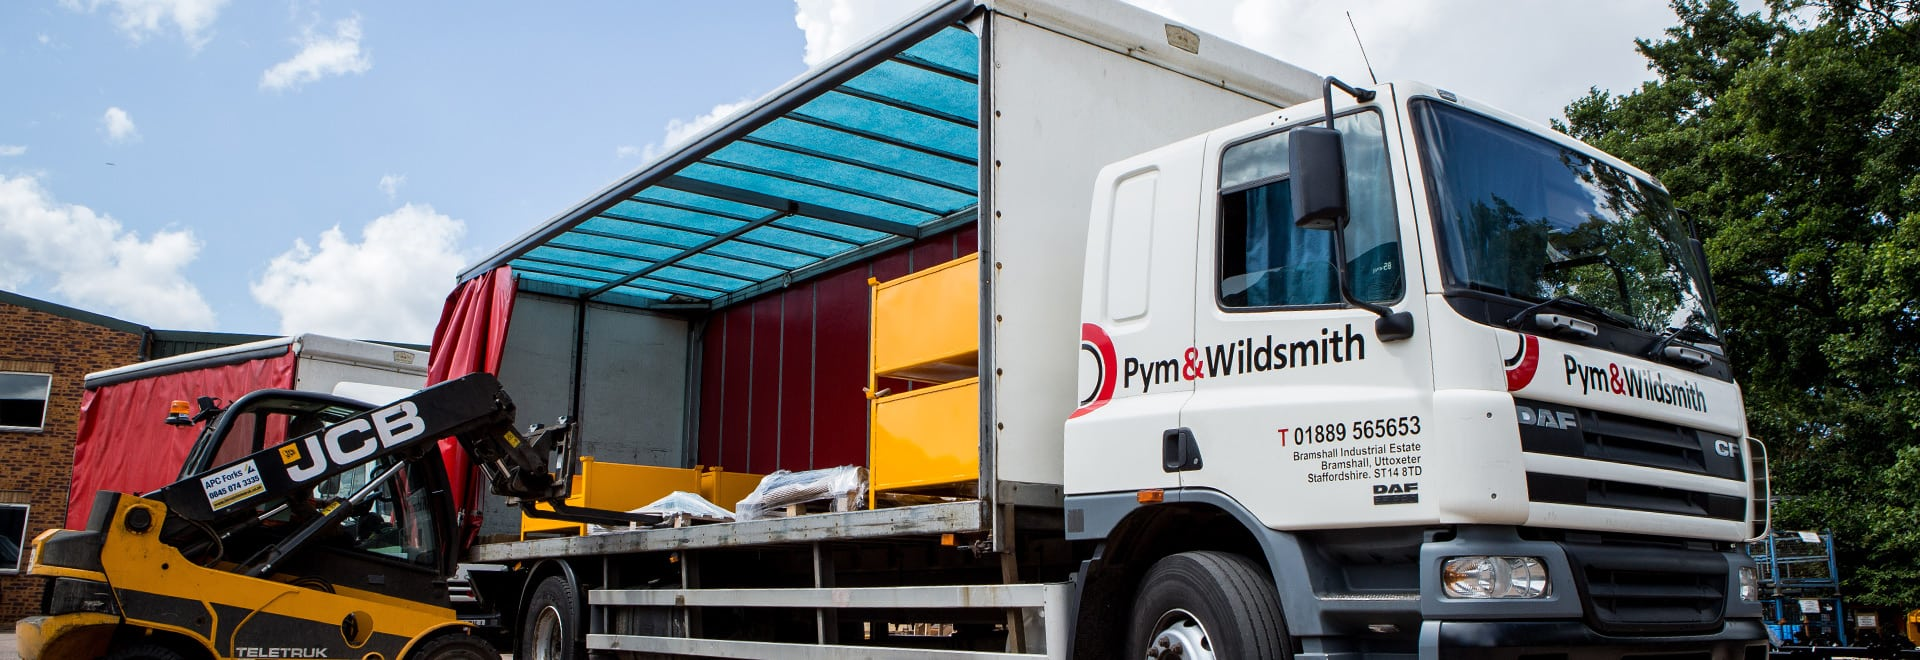 Metal finishers Pym and Wildsmith can collect and deliver in Staffordshire, Derbyshire and Cheshire